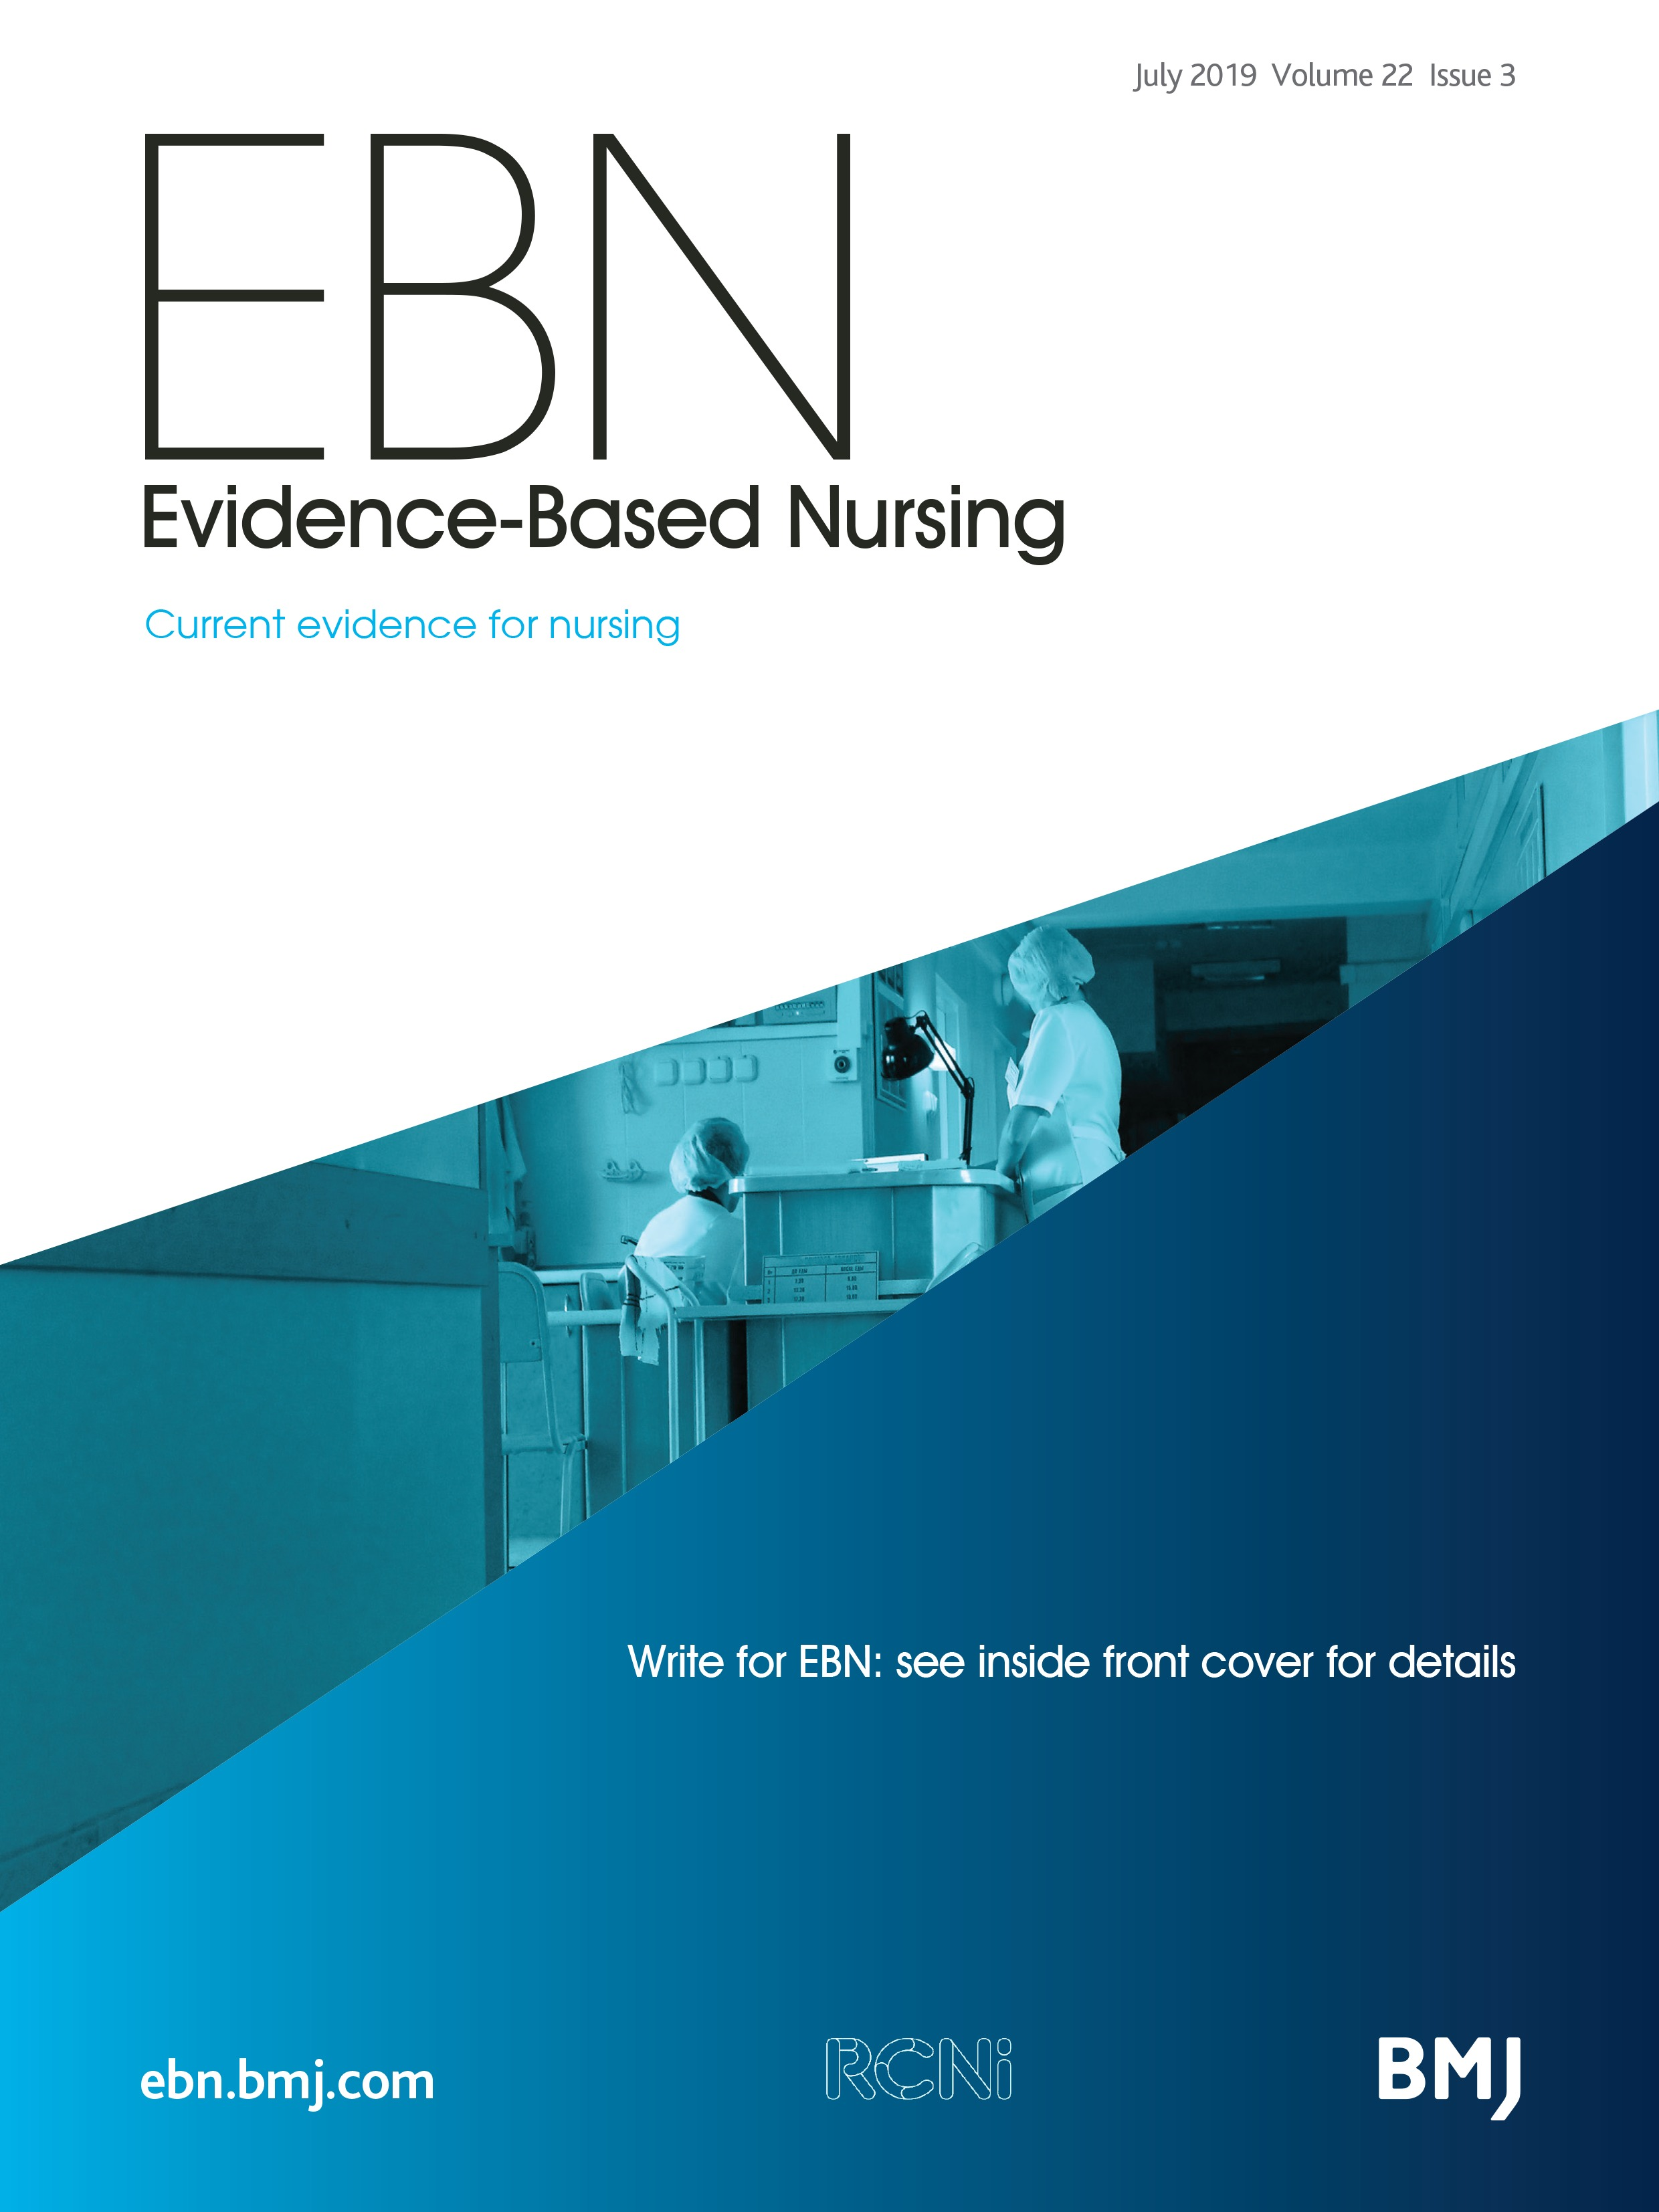 Asking answerable questions | Evidence-Based Nursing